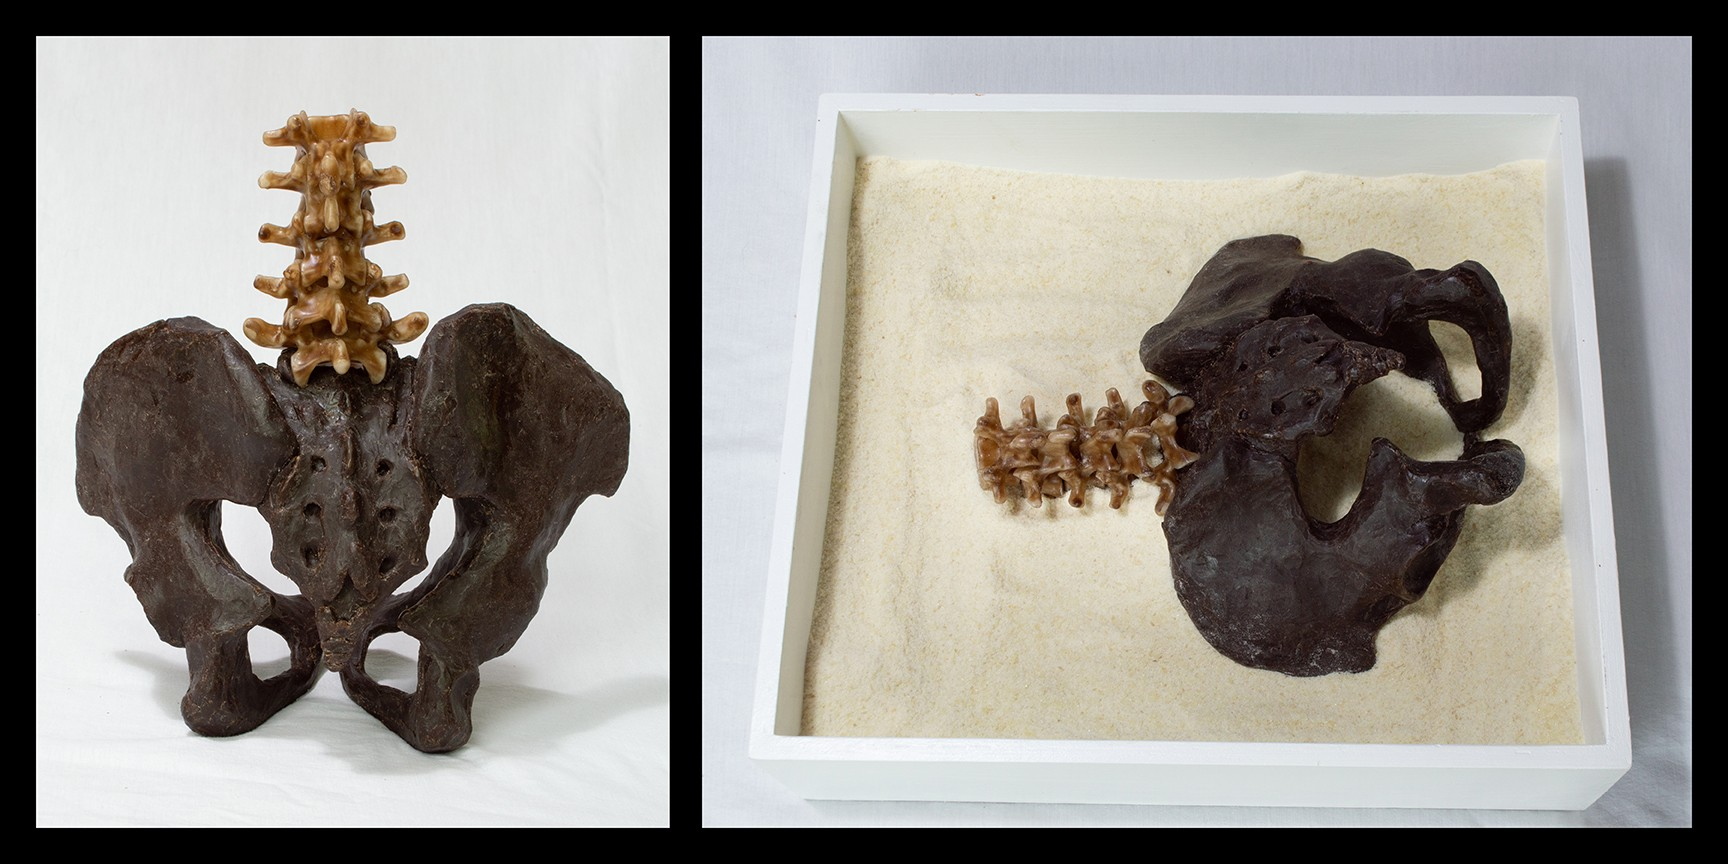 A photograph of a hand sculpted pelvis accompanied by the five lumbar vertebrae. Another photograph shows a hand sculpted femur, this bone connects to the acetabulum of the pelvis.